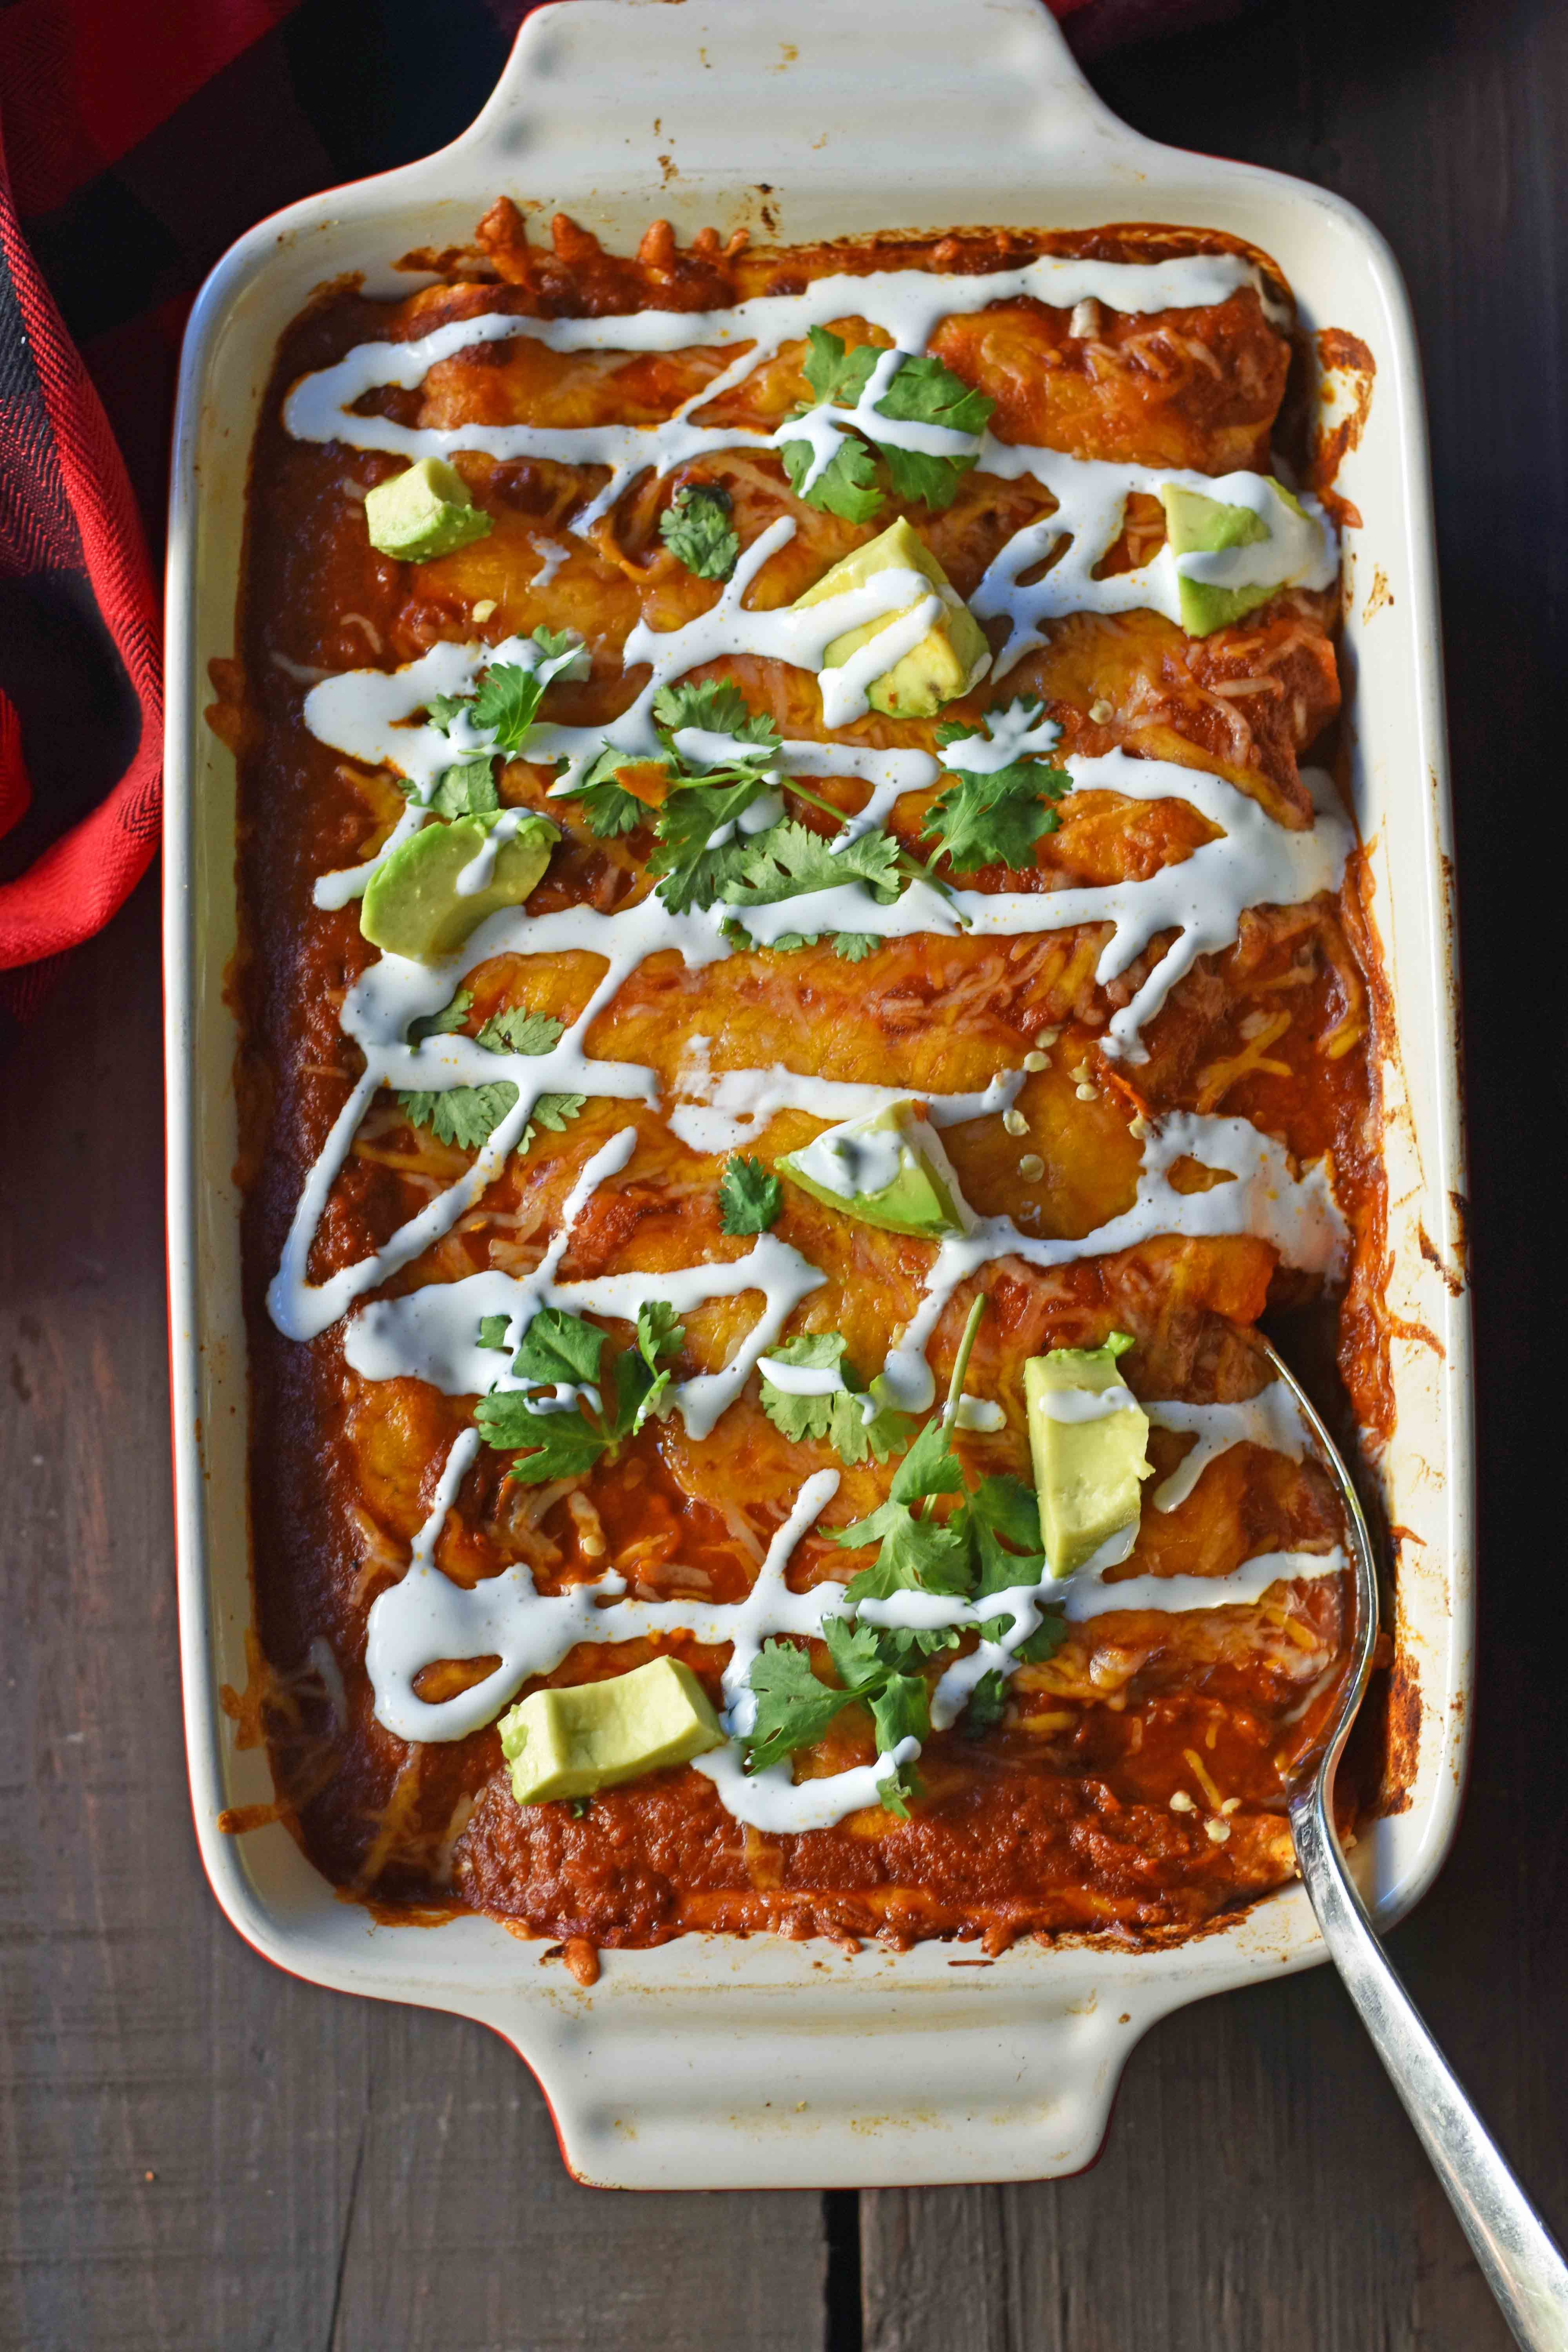 Red Chile Chicken Enchiladas with homemade red enchilada sauce. How to make enchilada sauce from scratch. The best red chicken and cheese enchiladas. www.modernhoney.com